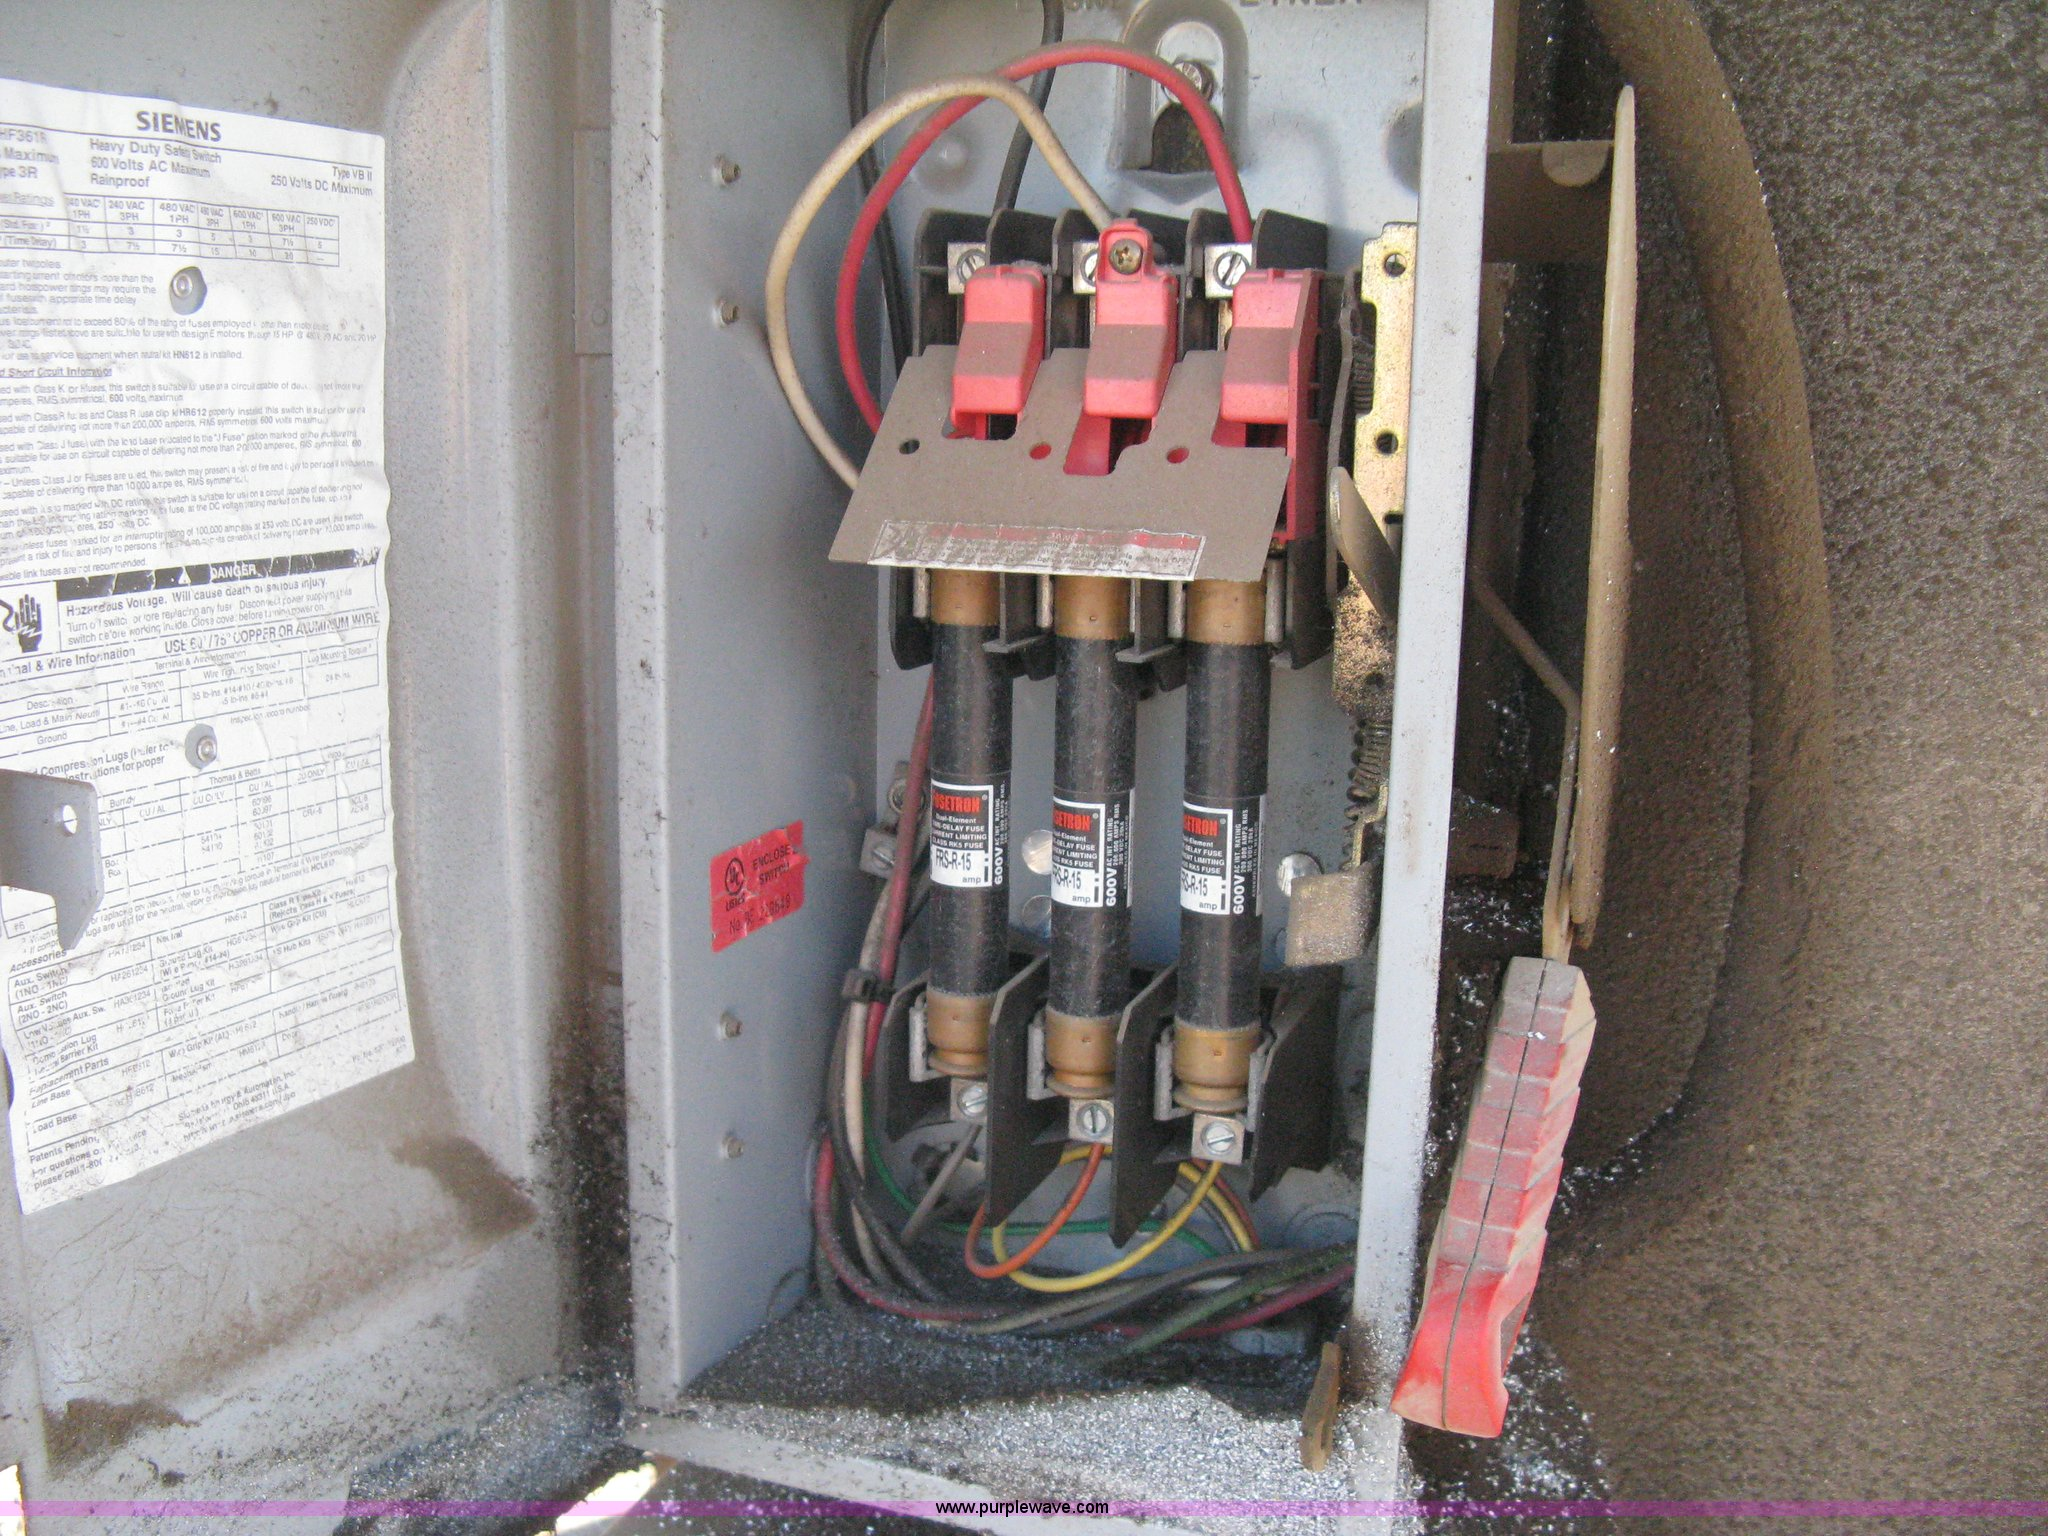 Jones Superior Commercial Meat Saw Item B8439 Sold Wedn Aluminum Wiring Hazards Full Size In New Window